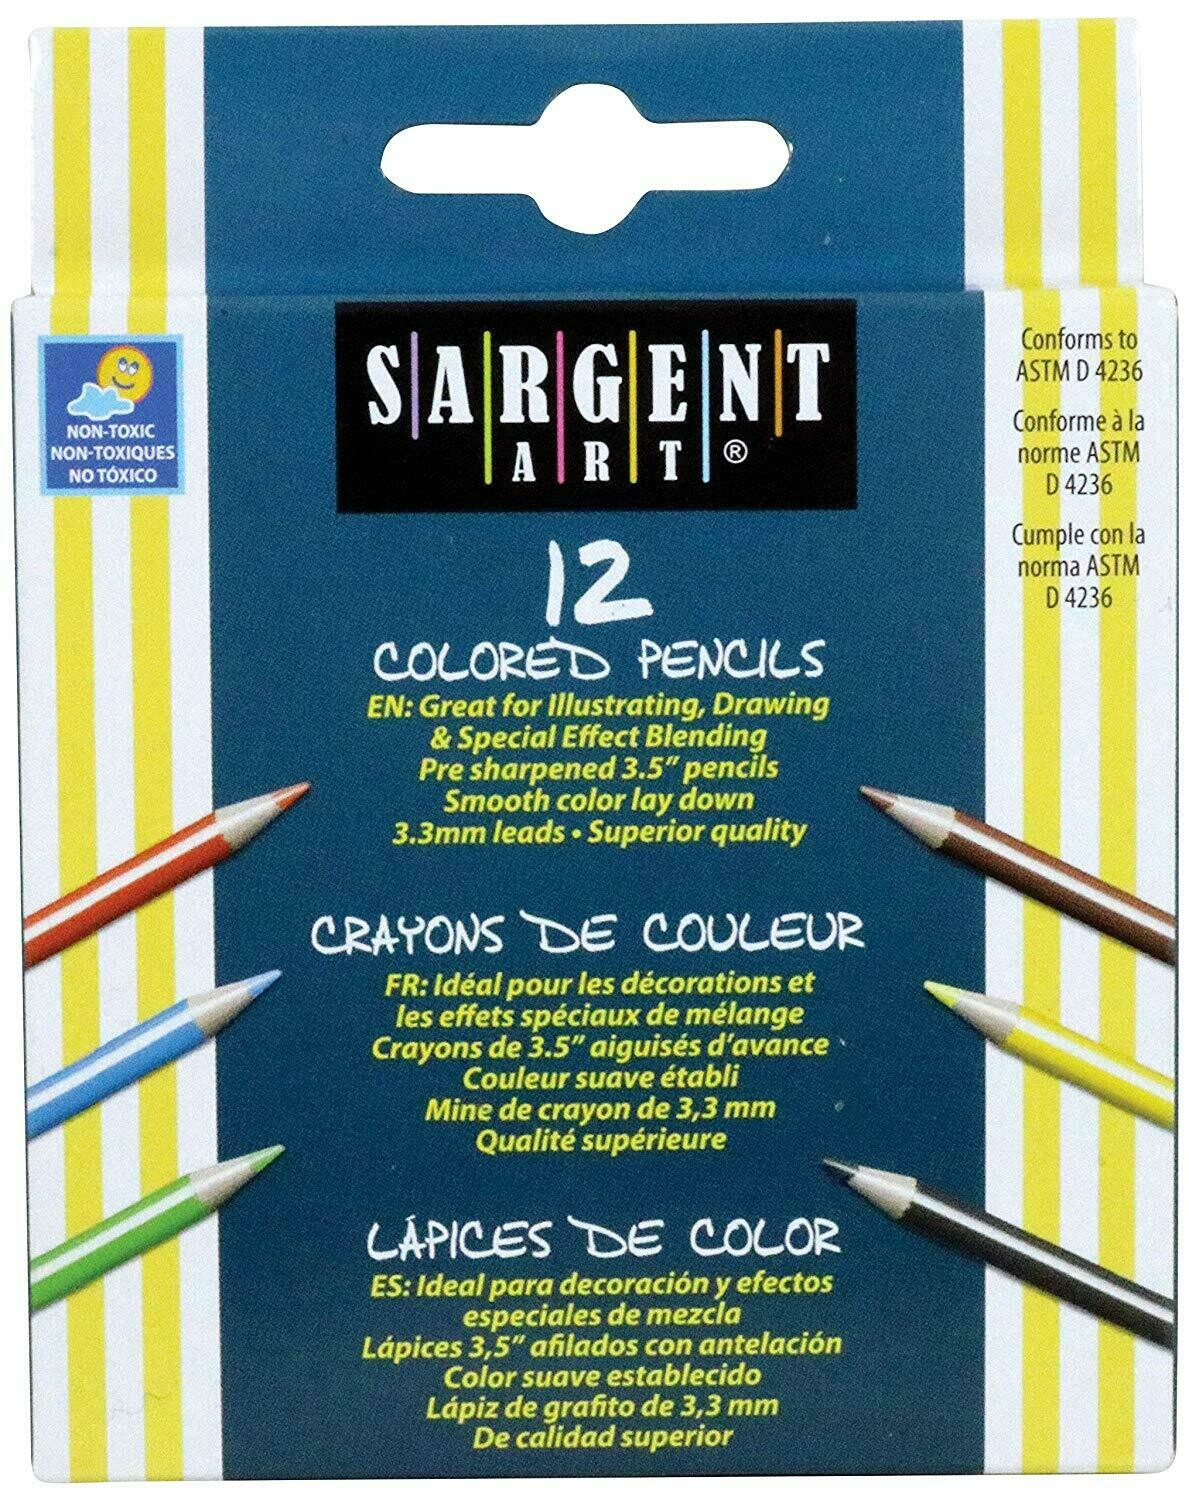 Sargent Art / Half Sized Colored Pencils Set, Pk-12